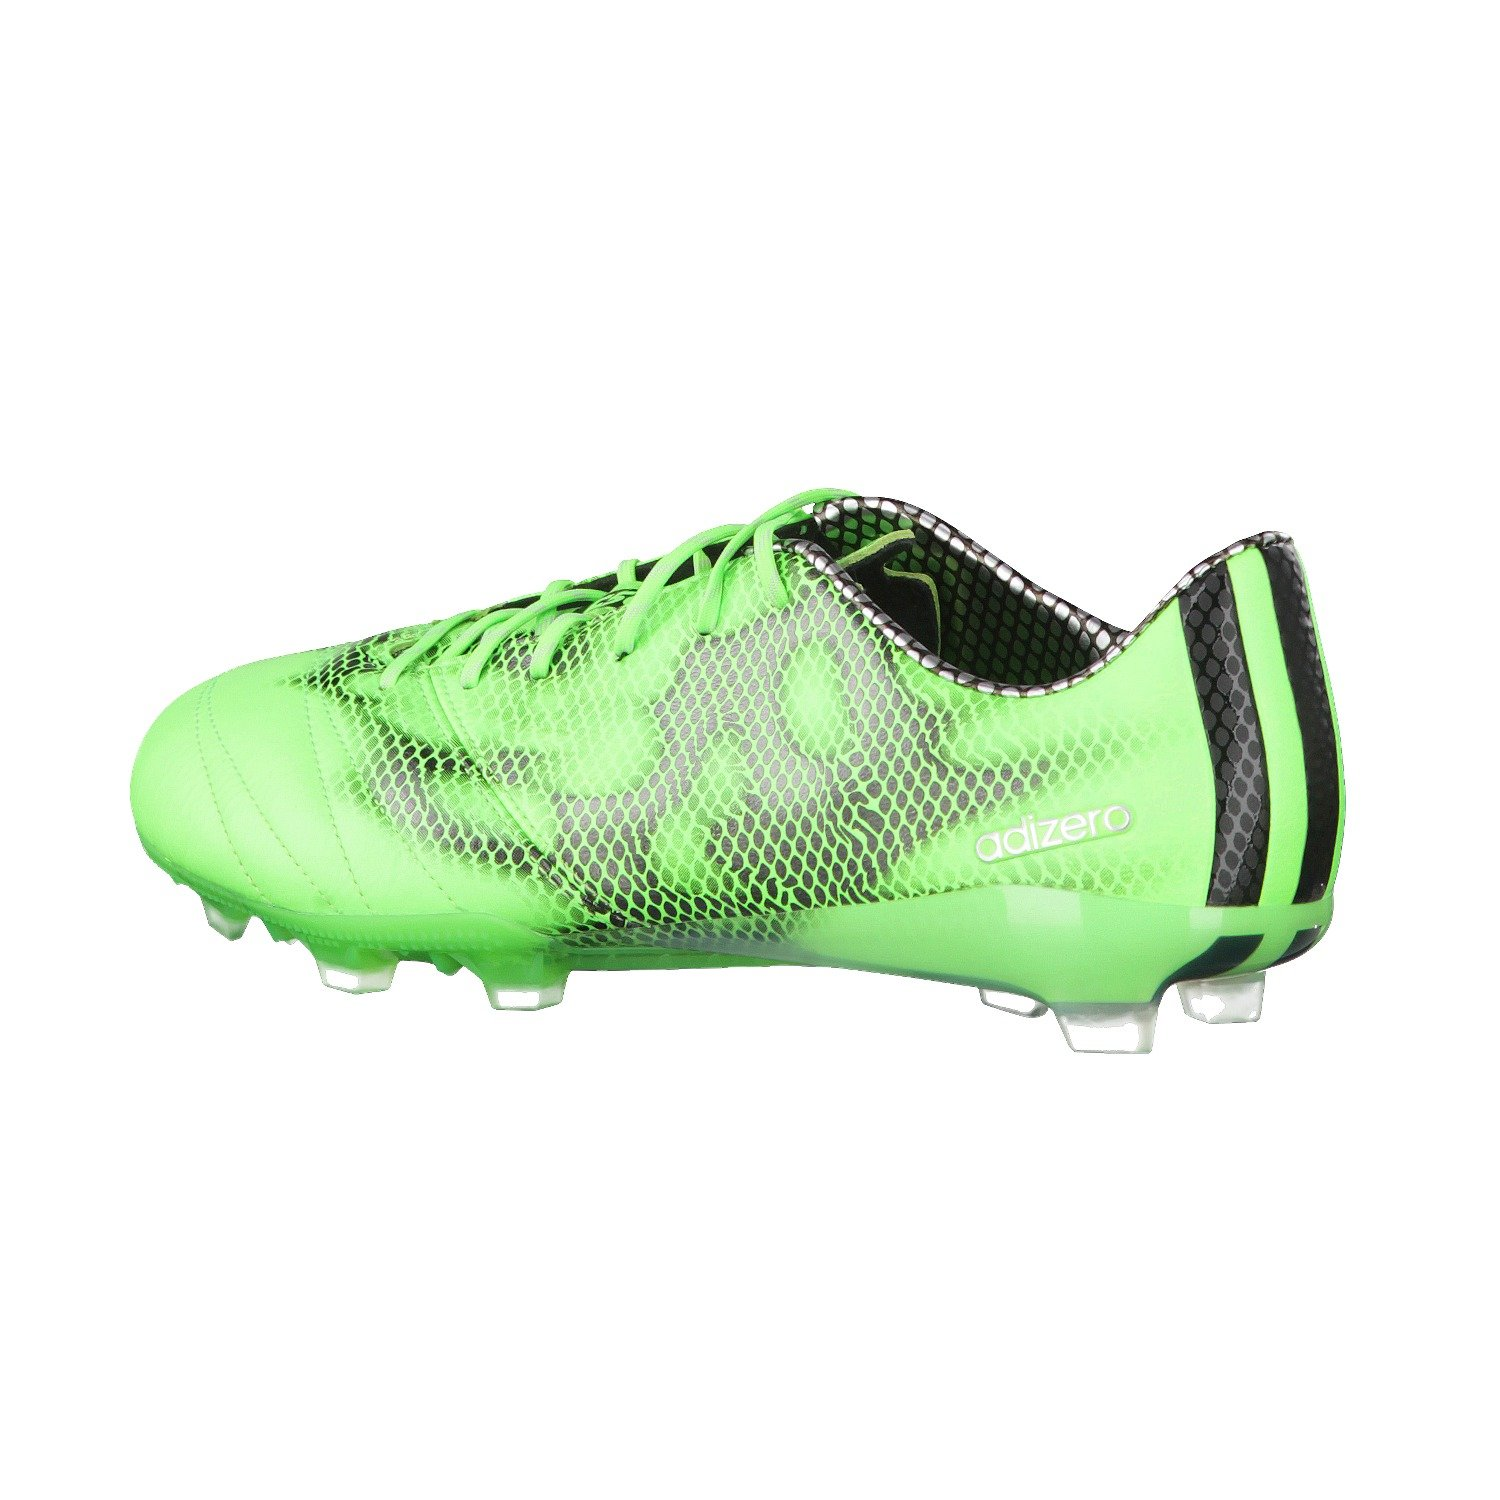 2bb721d1a adidas F50 Adizero Firm Ground (Leather), Men's Footbal Shoes ...